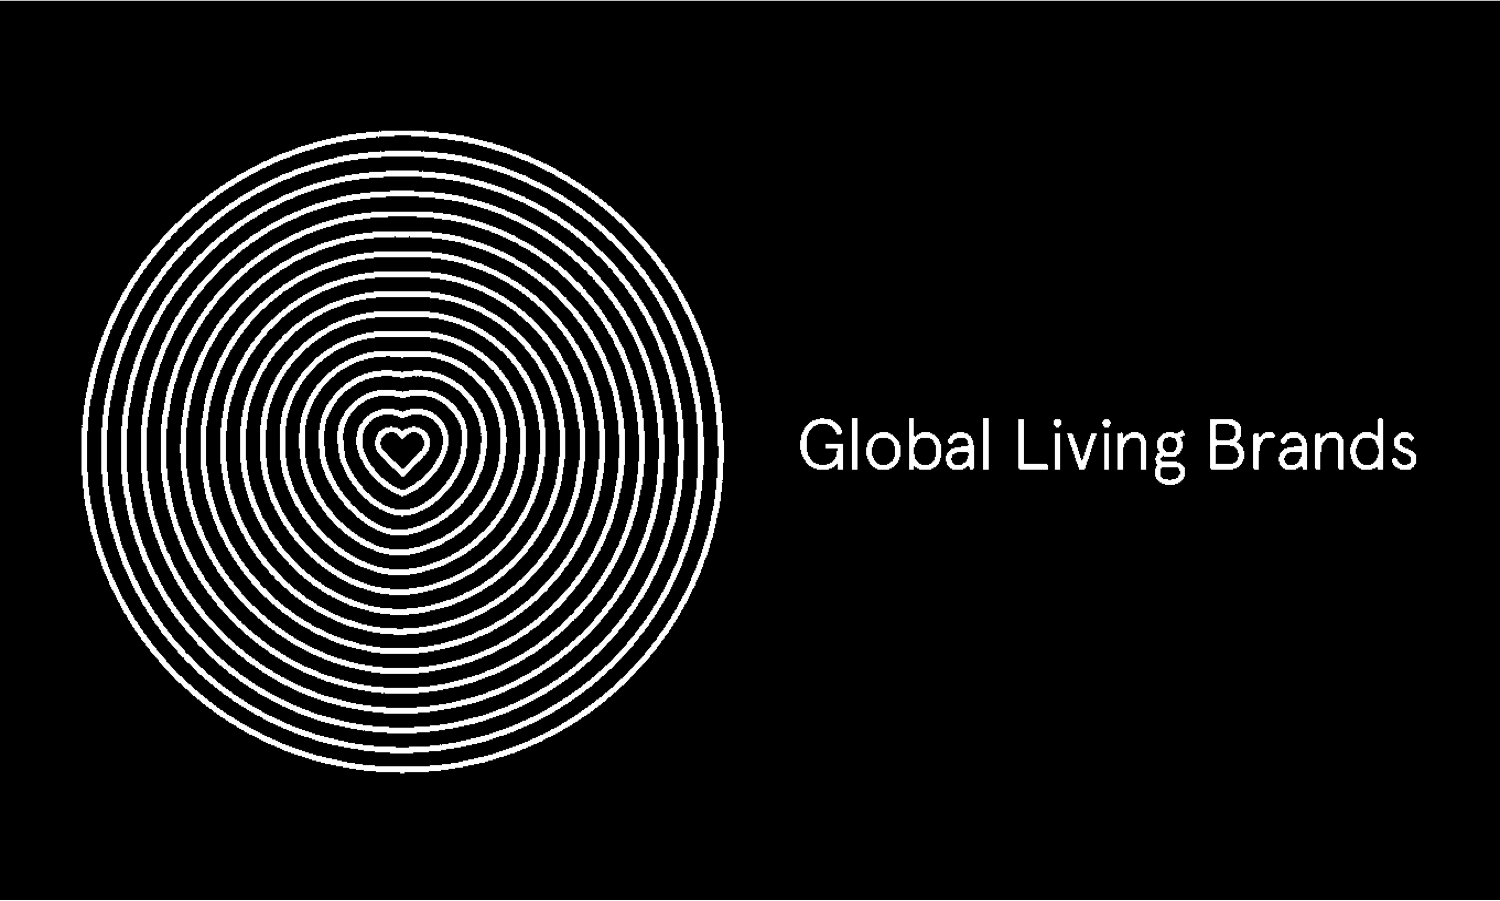 Global Living Brands